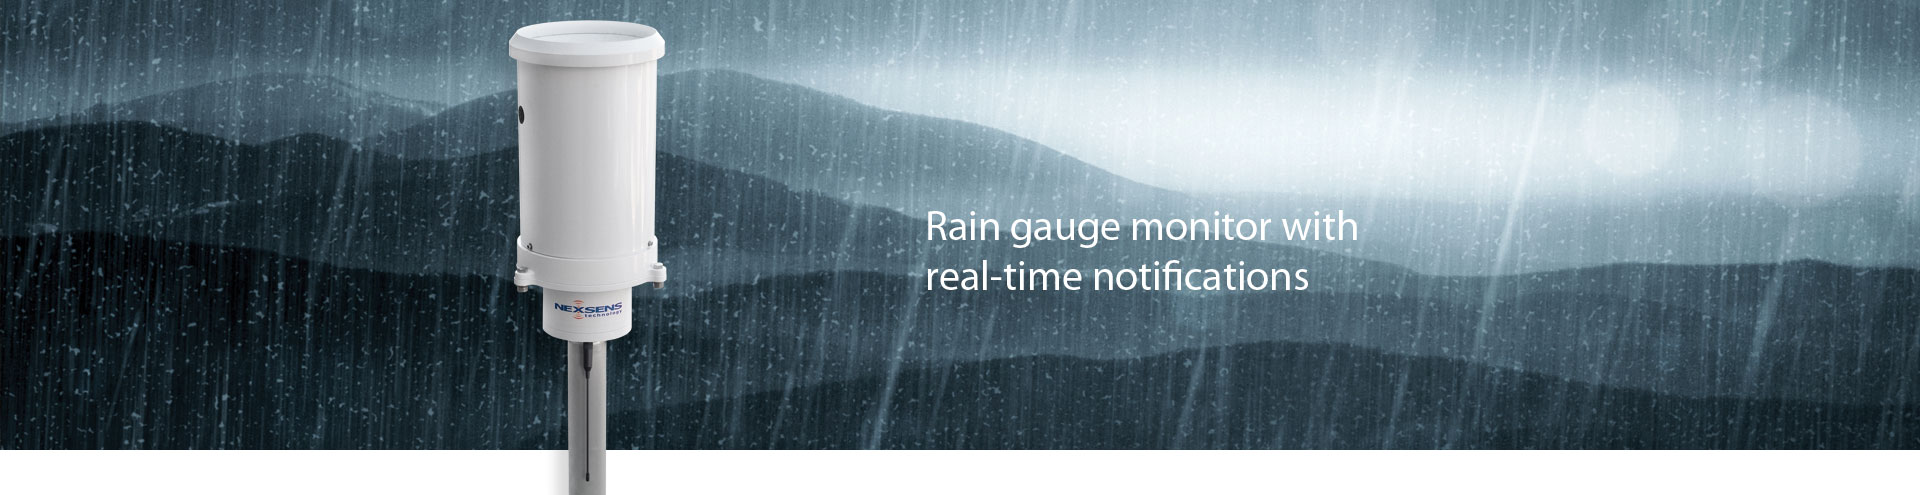 Rain gauge monitor with real-time notifications